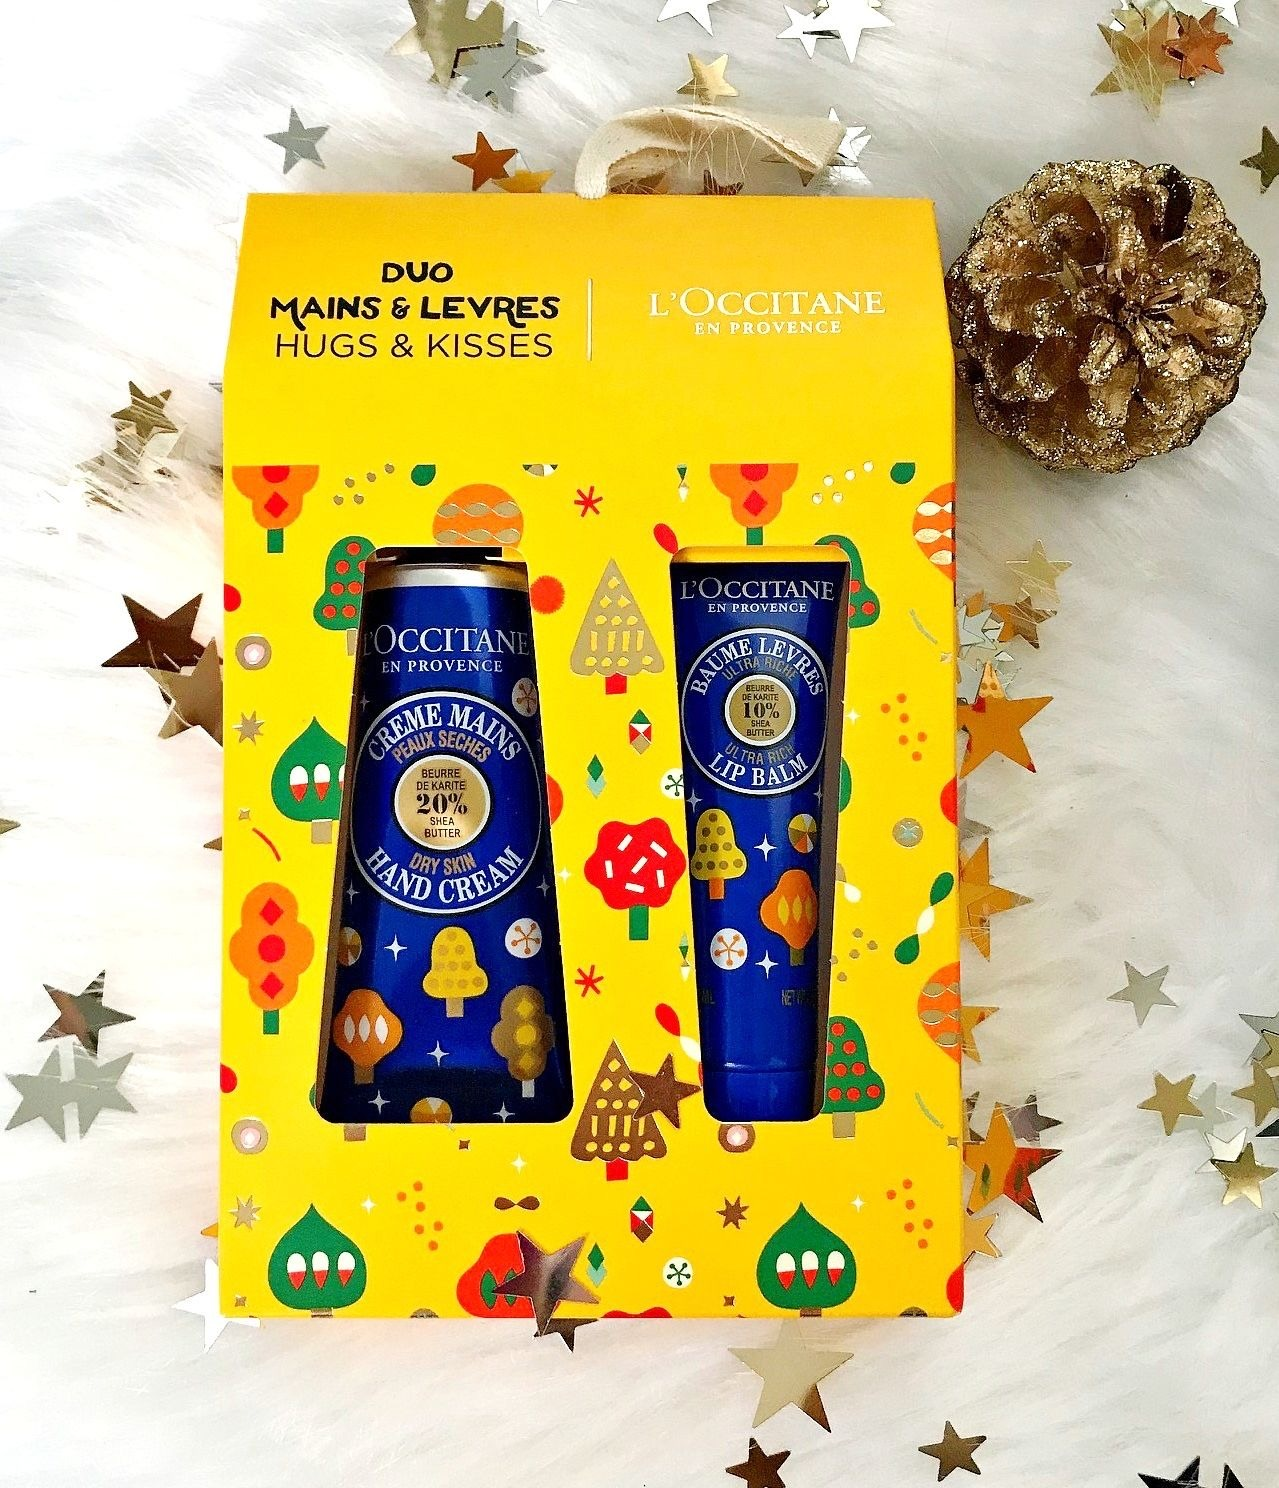 L'Occitane Hugs & Kisses Duo review